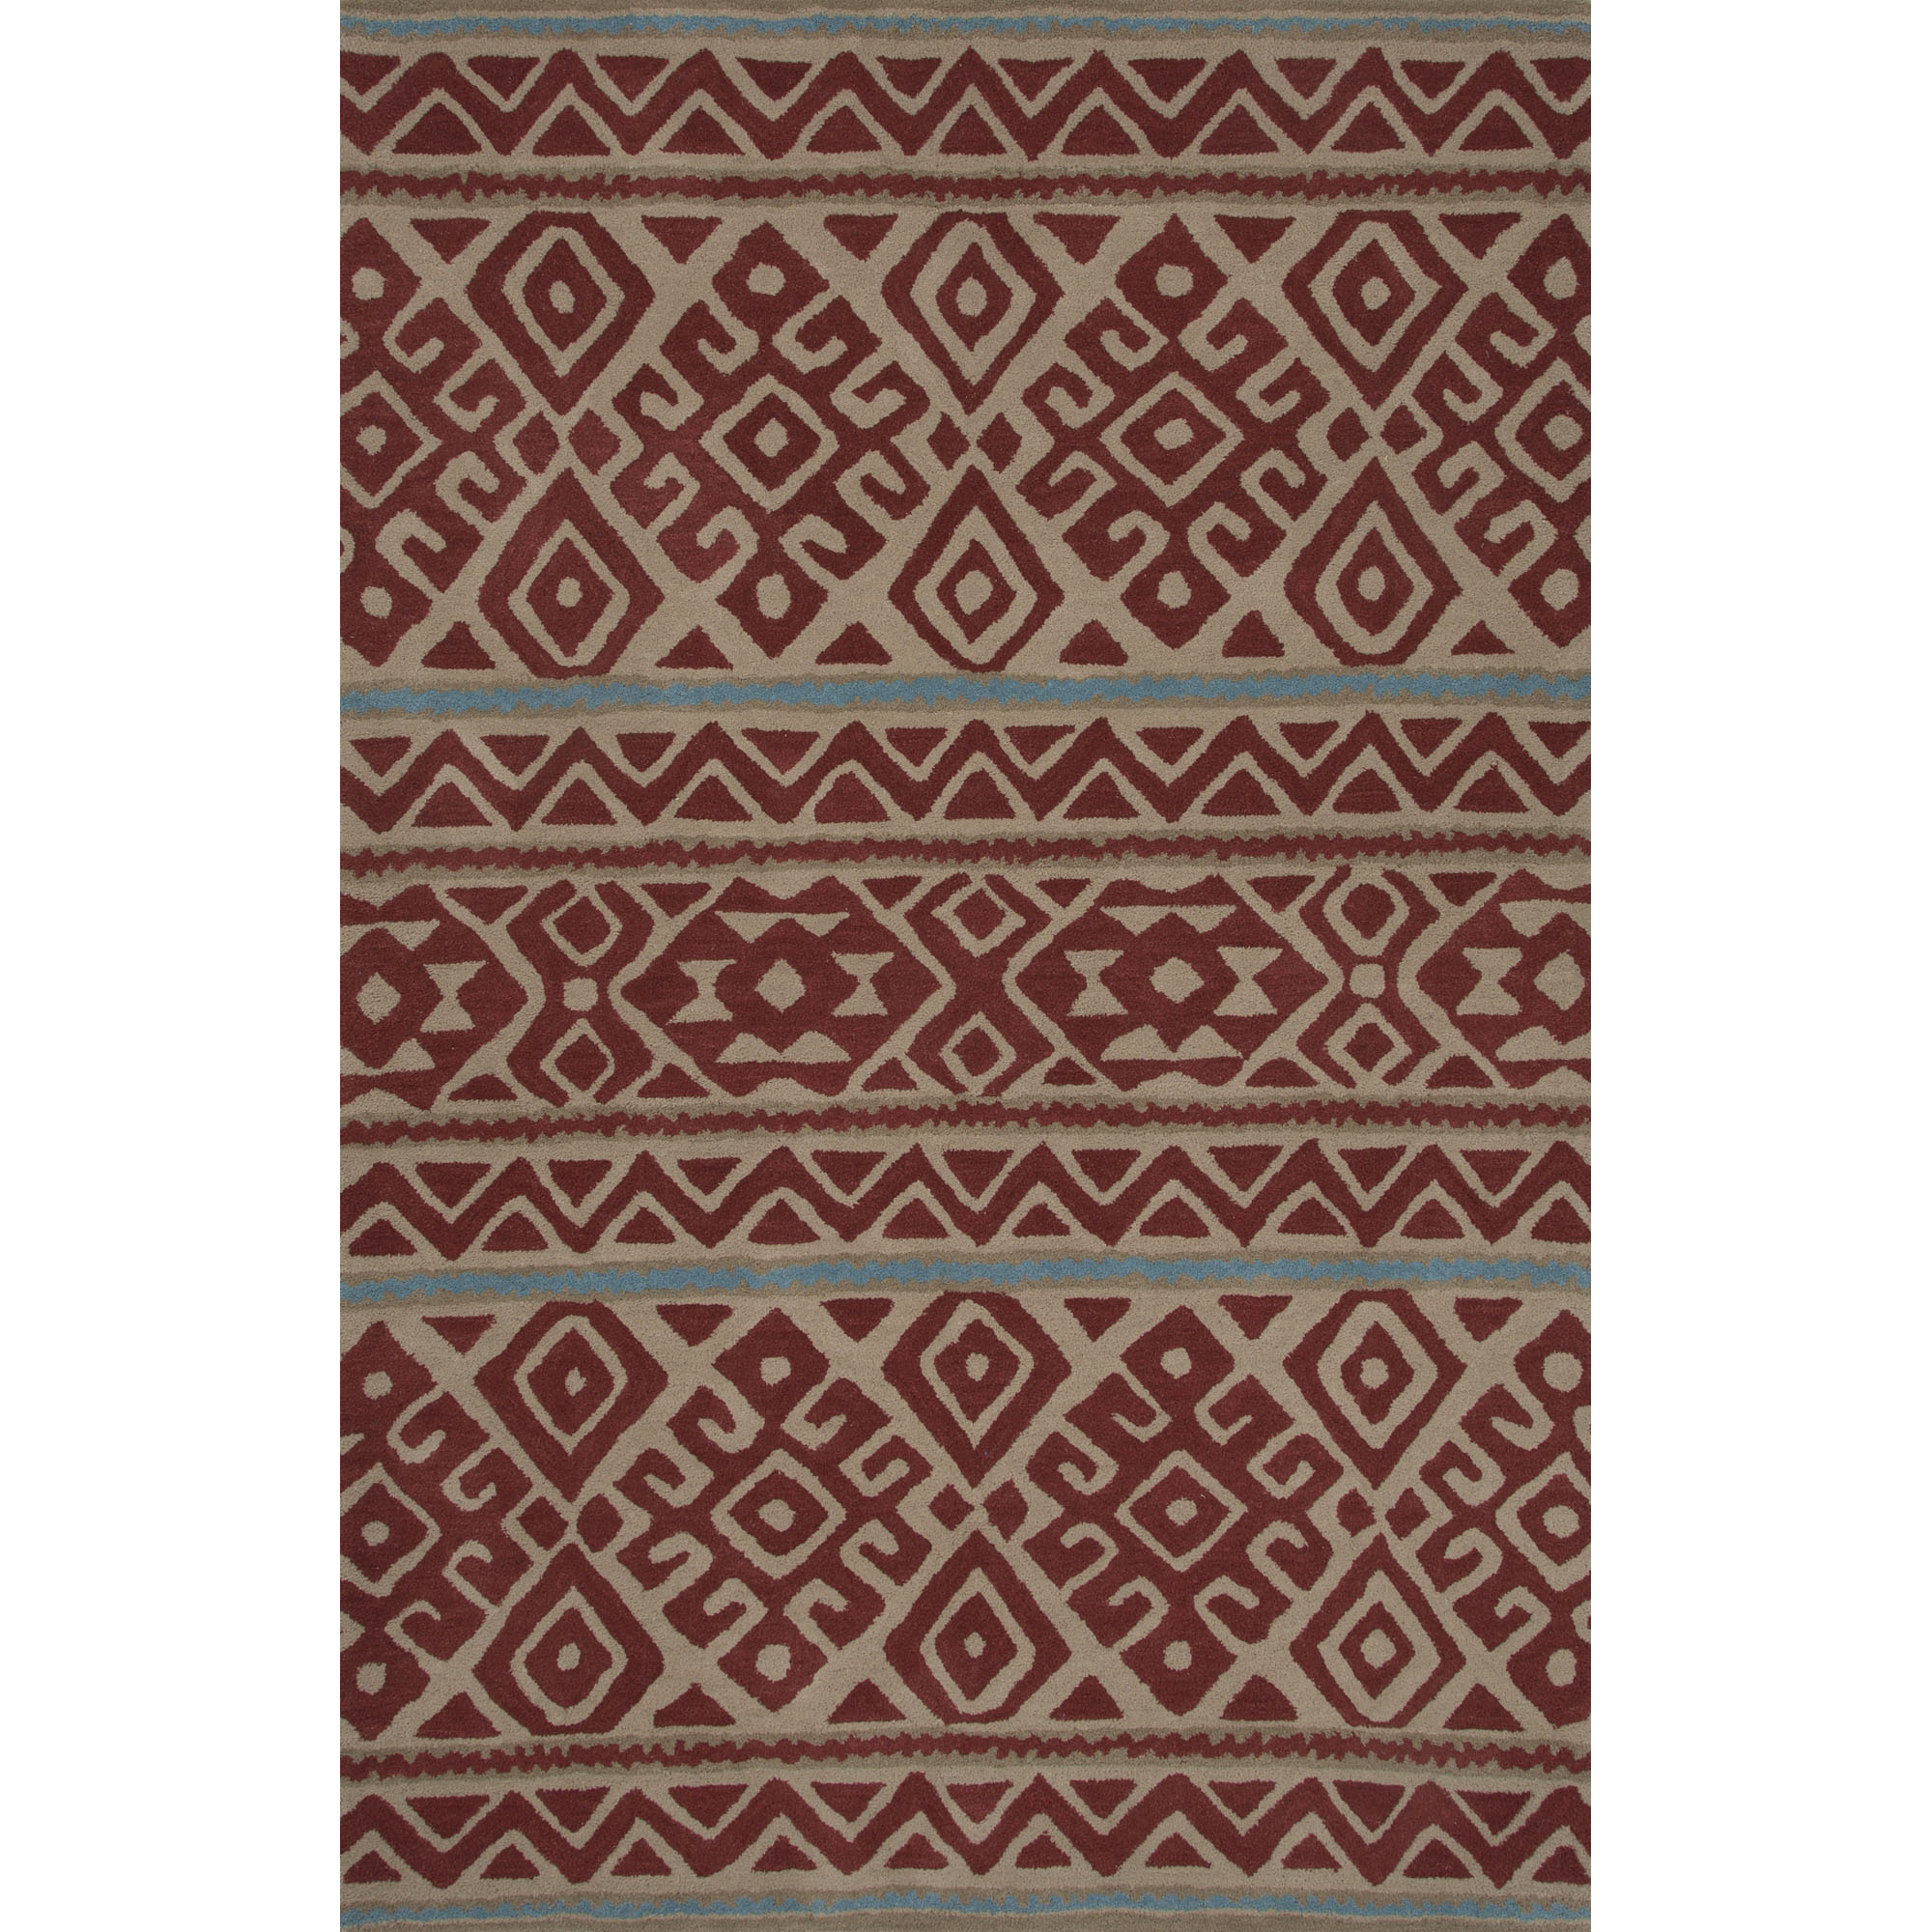 JAIPUR Rugs Traditions Made Modern Tufted 5 x 8 Rug - Item Number: RUG121389